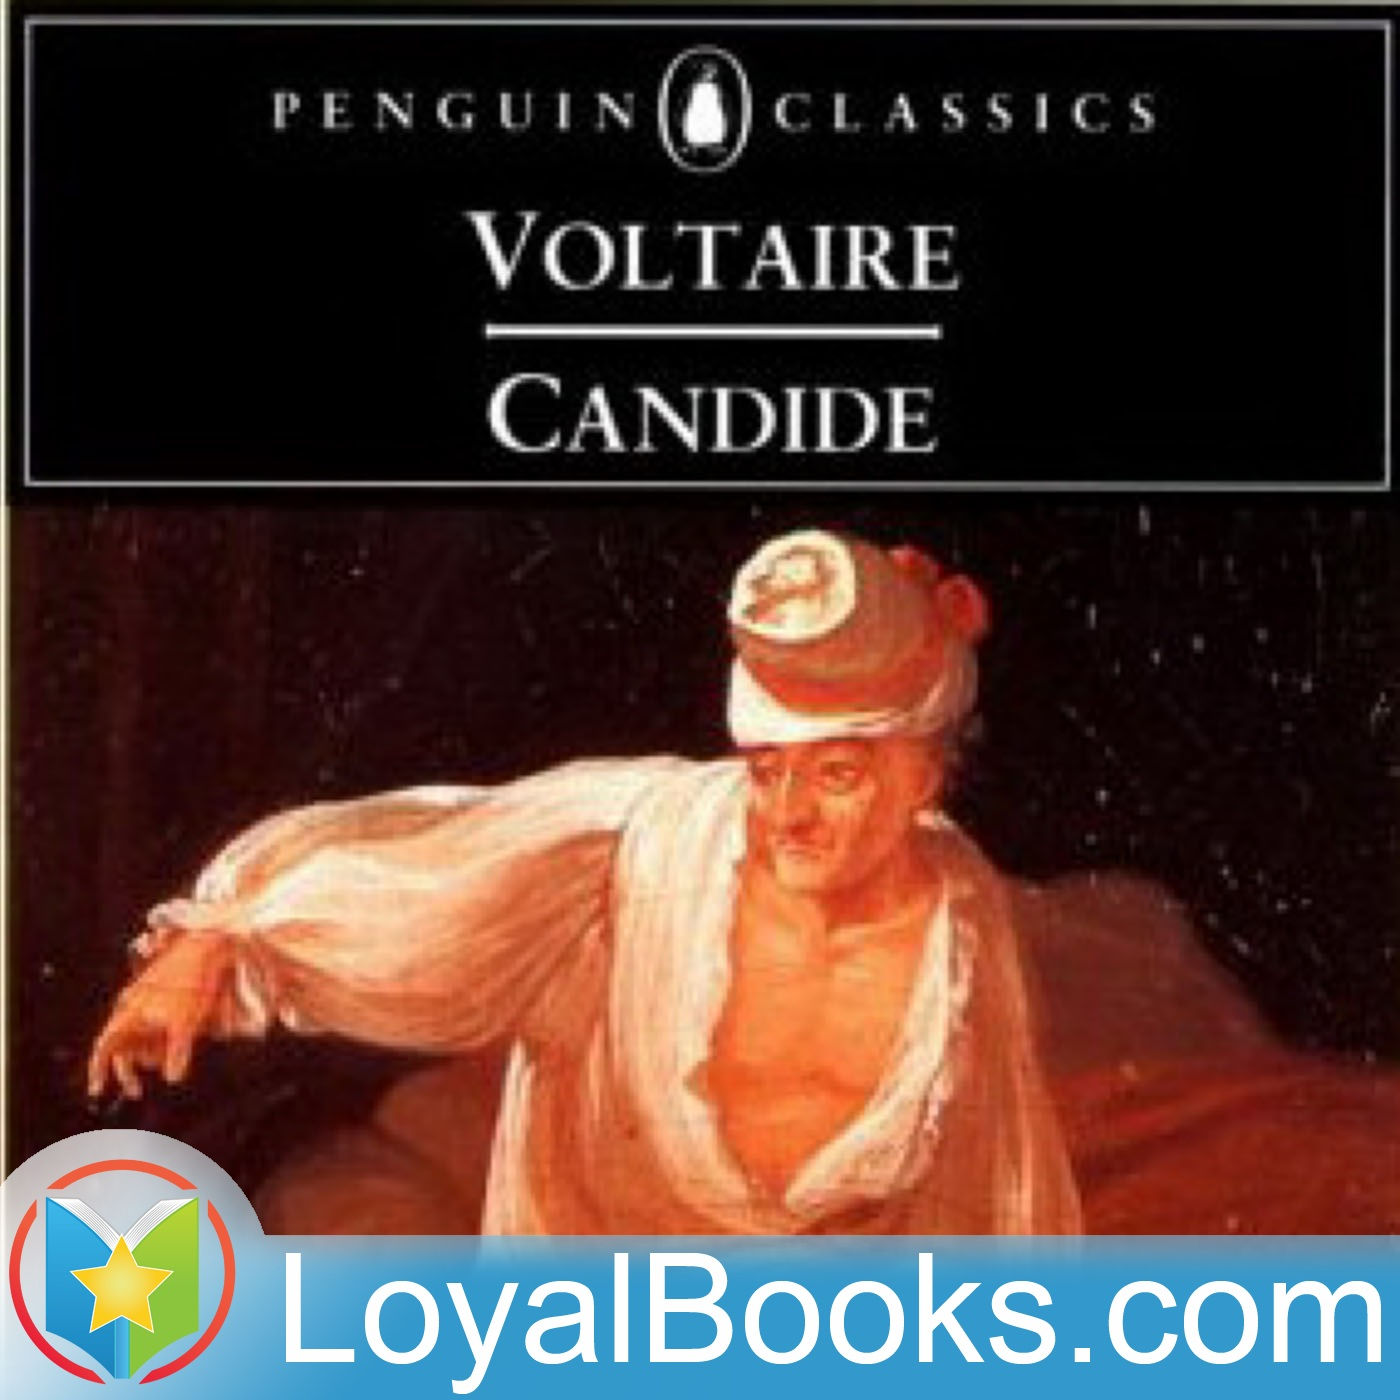 <![CDATA[Candide by Voltaire]]>